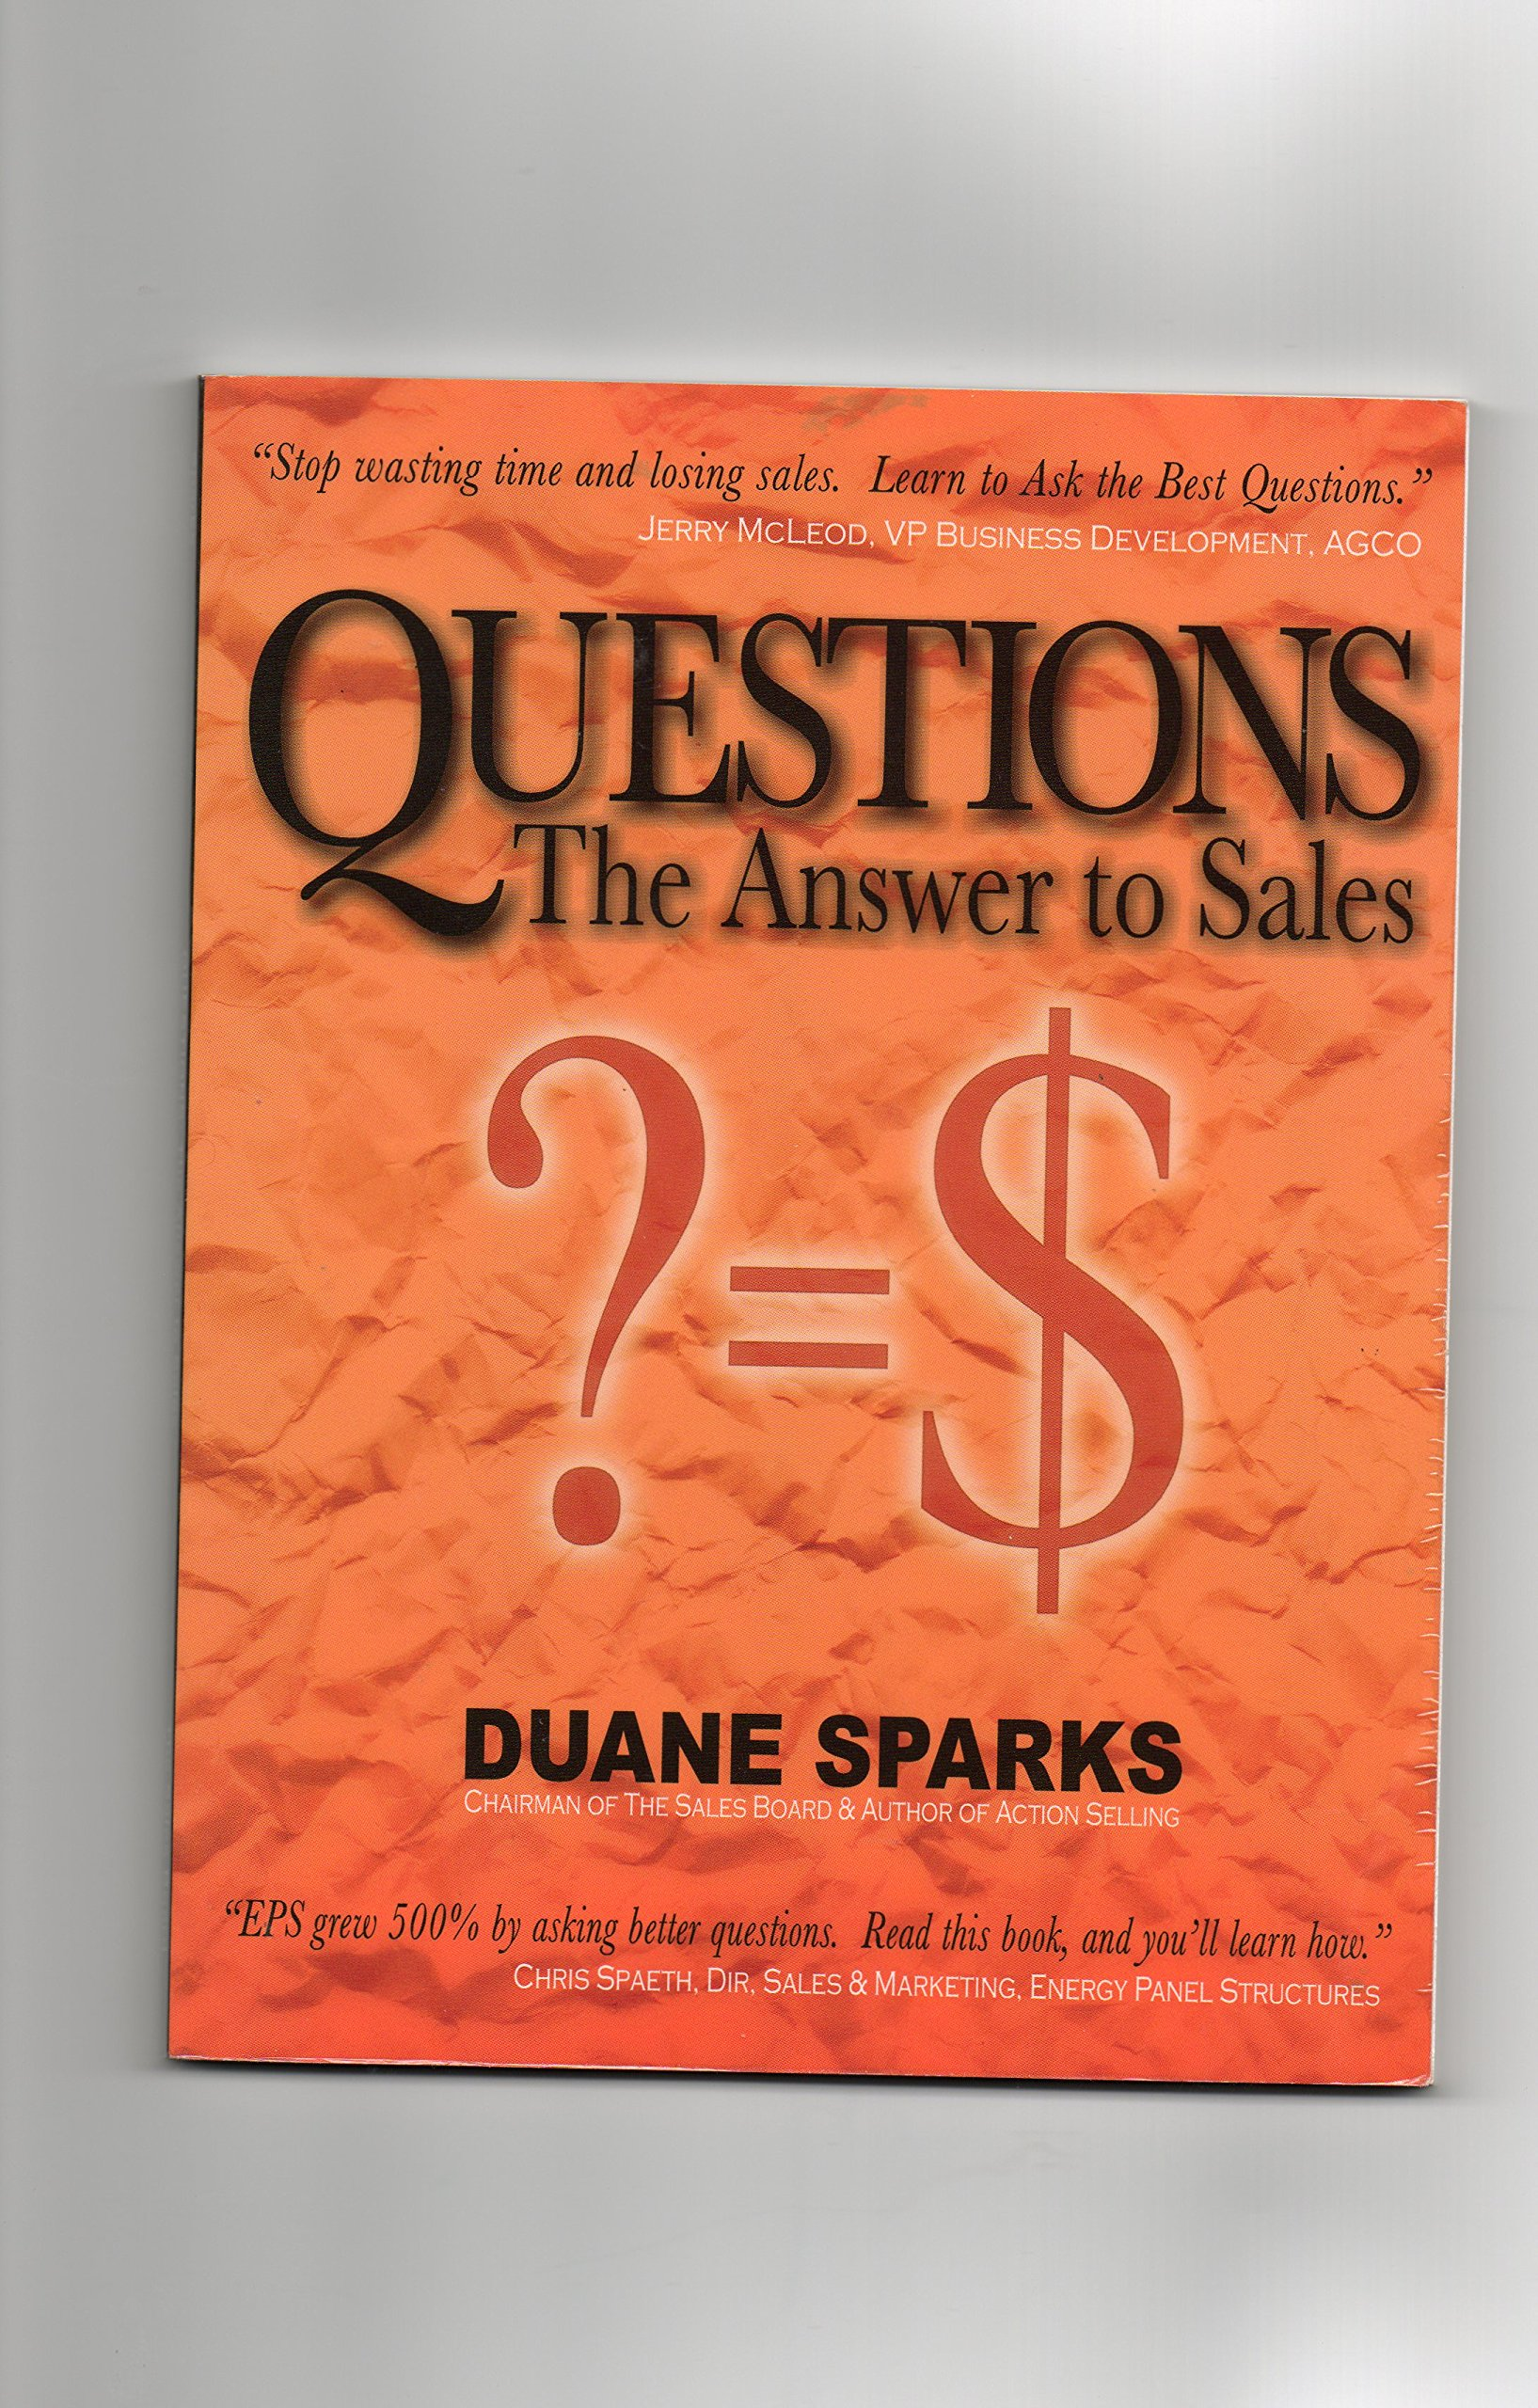 questions the answer to s duane sparks 9780975356937 amazon questions the answer to s duane sparks 9780975356937 amazon com books